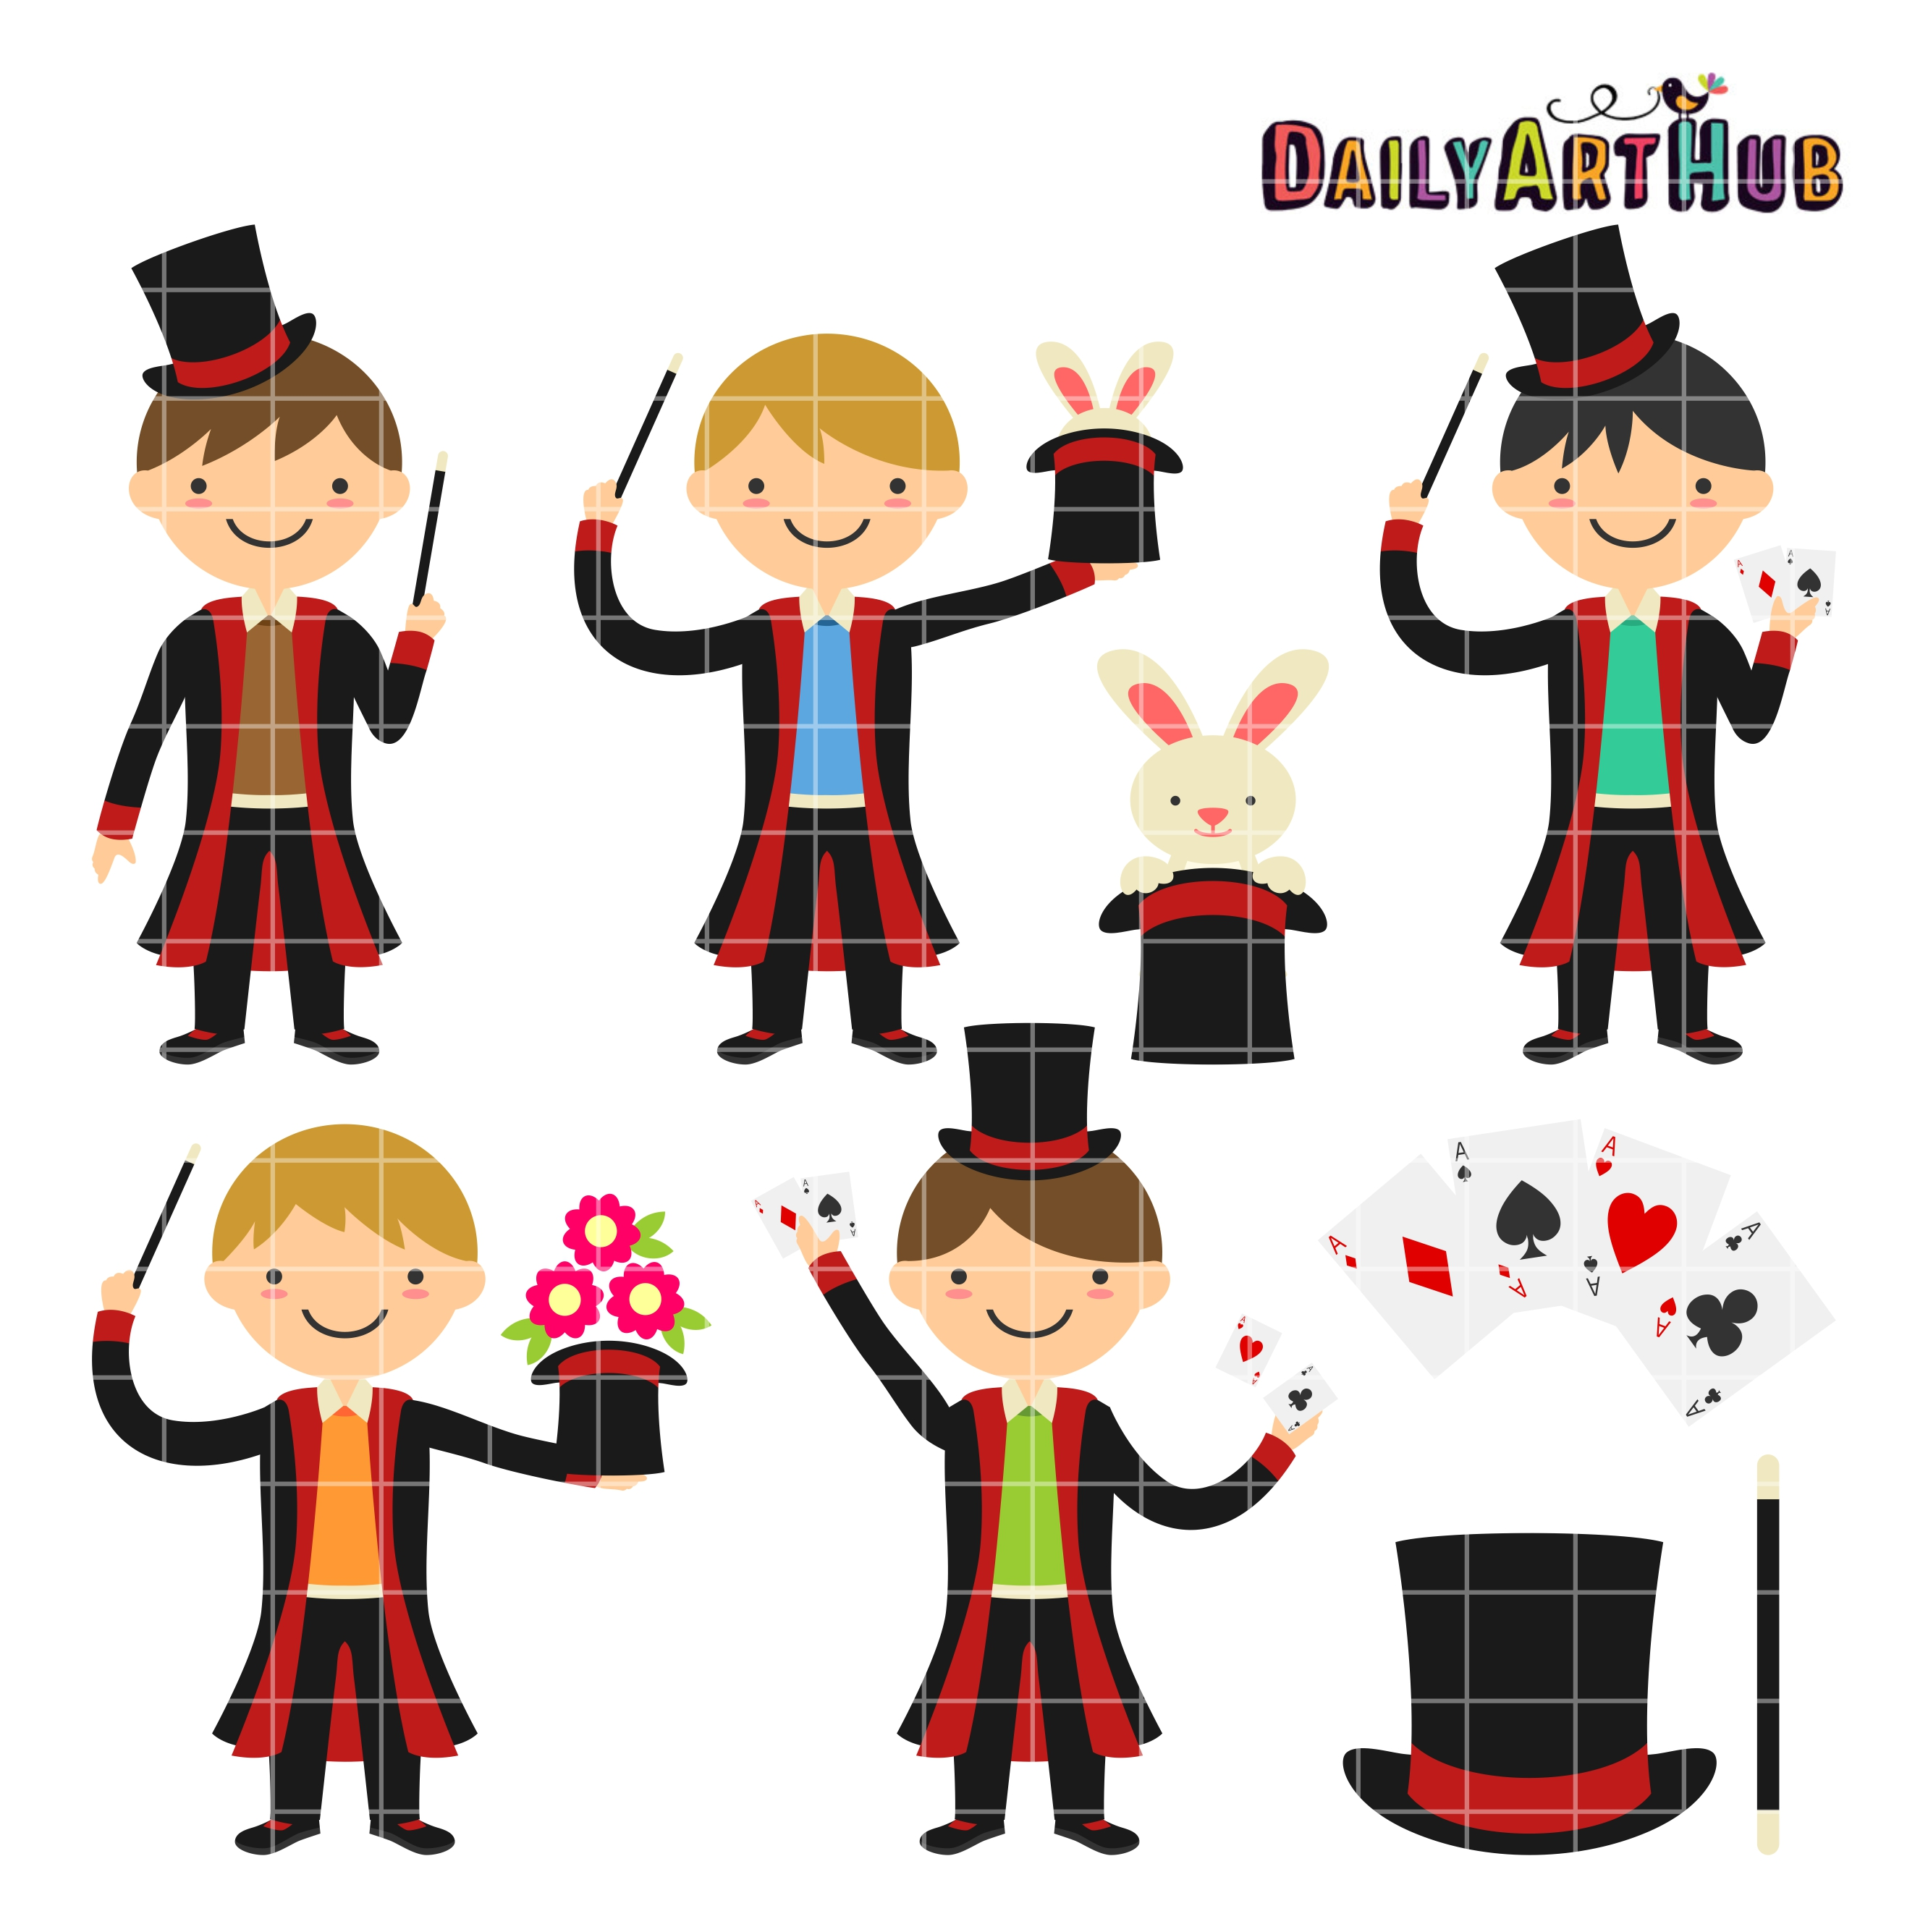 magician boys clip art set daily art hub free clip art everyday rh dailyarthub com magician clipart black and white magician clipart images